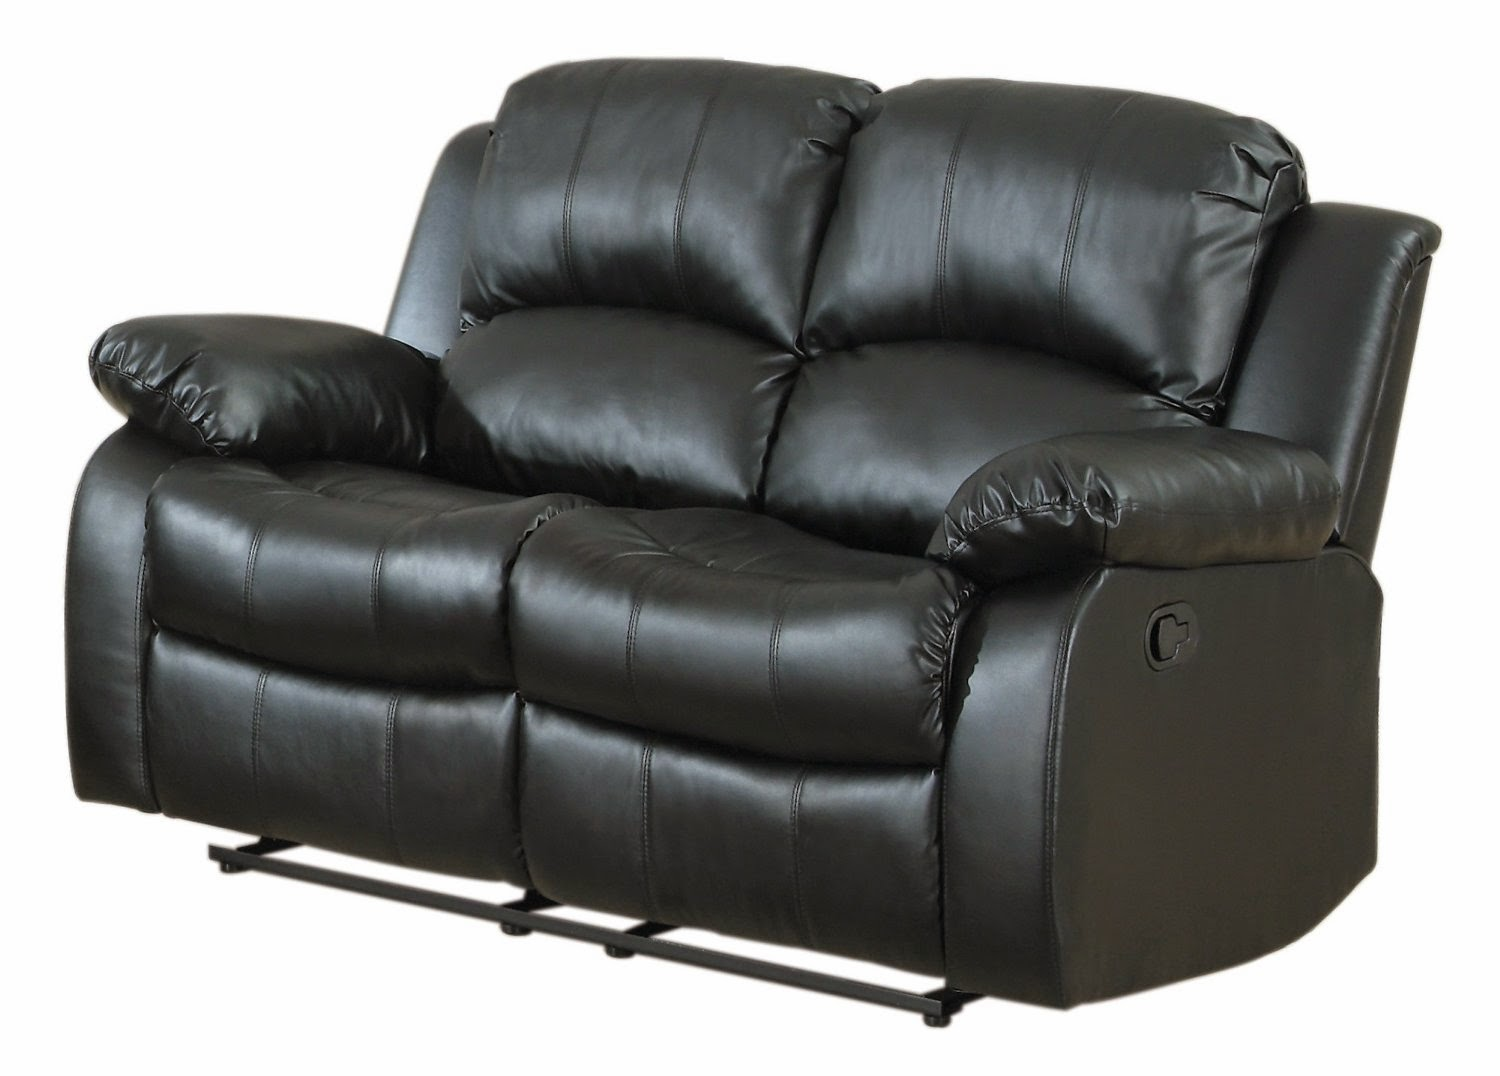 Reclining Loveseat Sale: Reclining Sofas And Loveseats Cheap